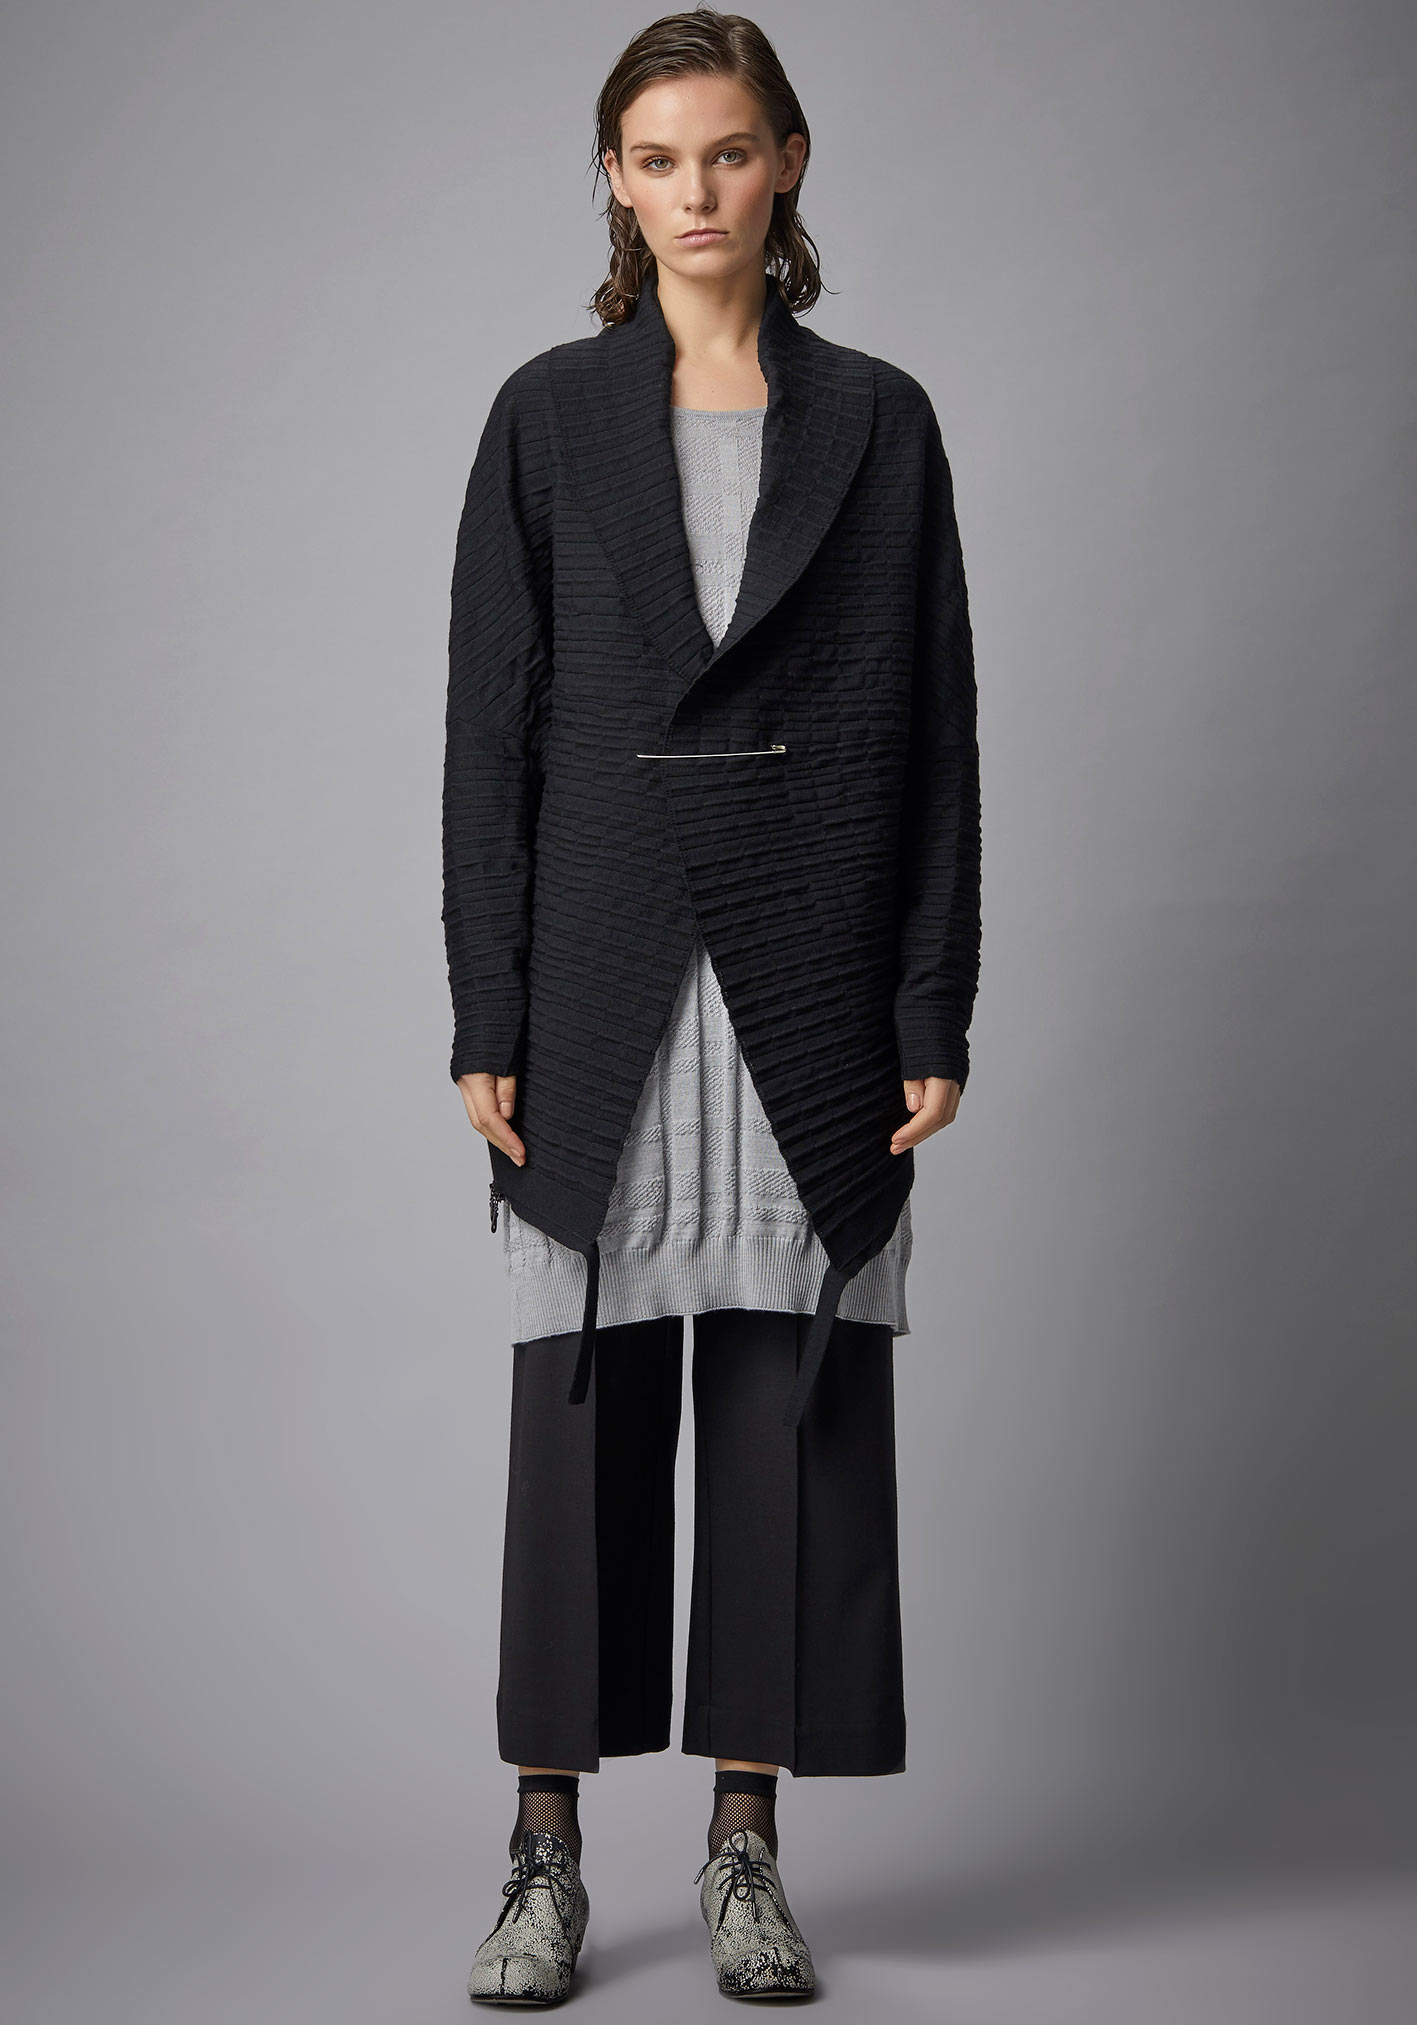 buy the latest 2 Way Pleat Zip Cardigan online